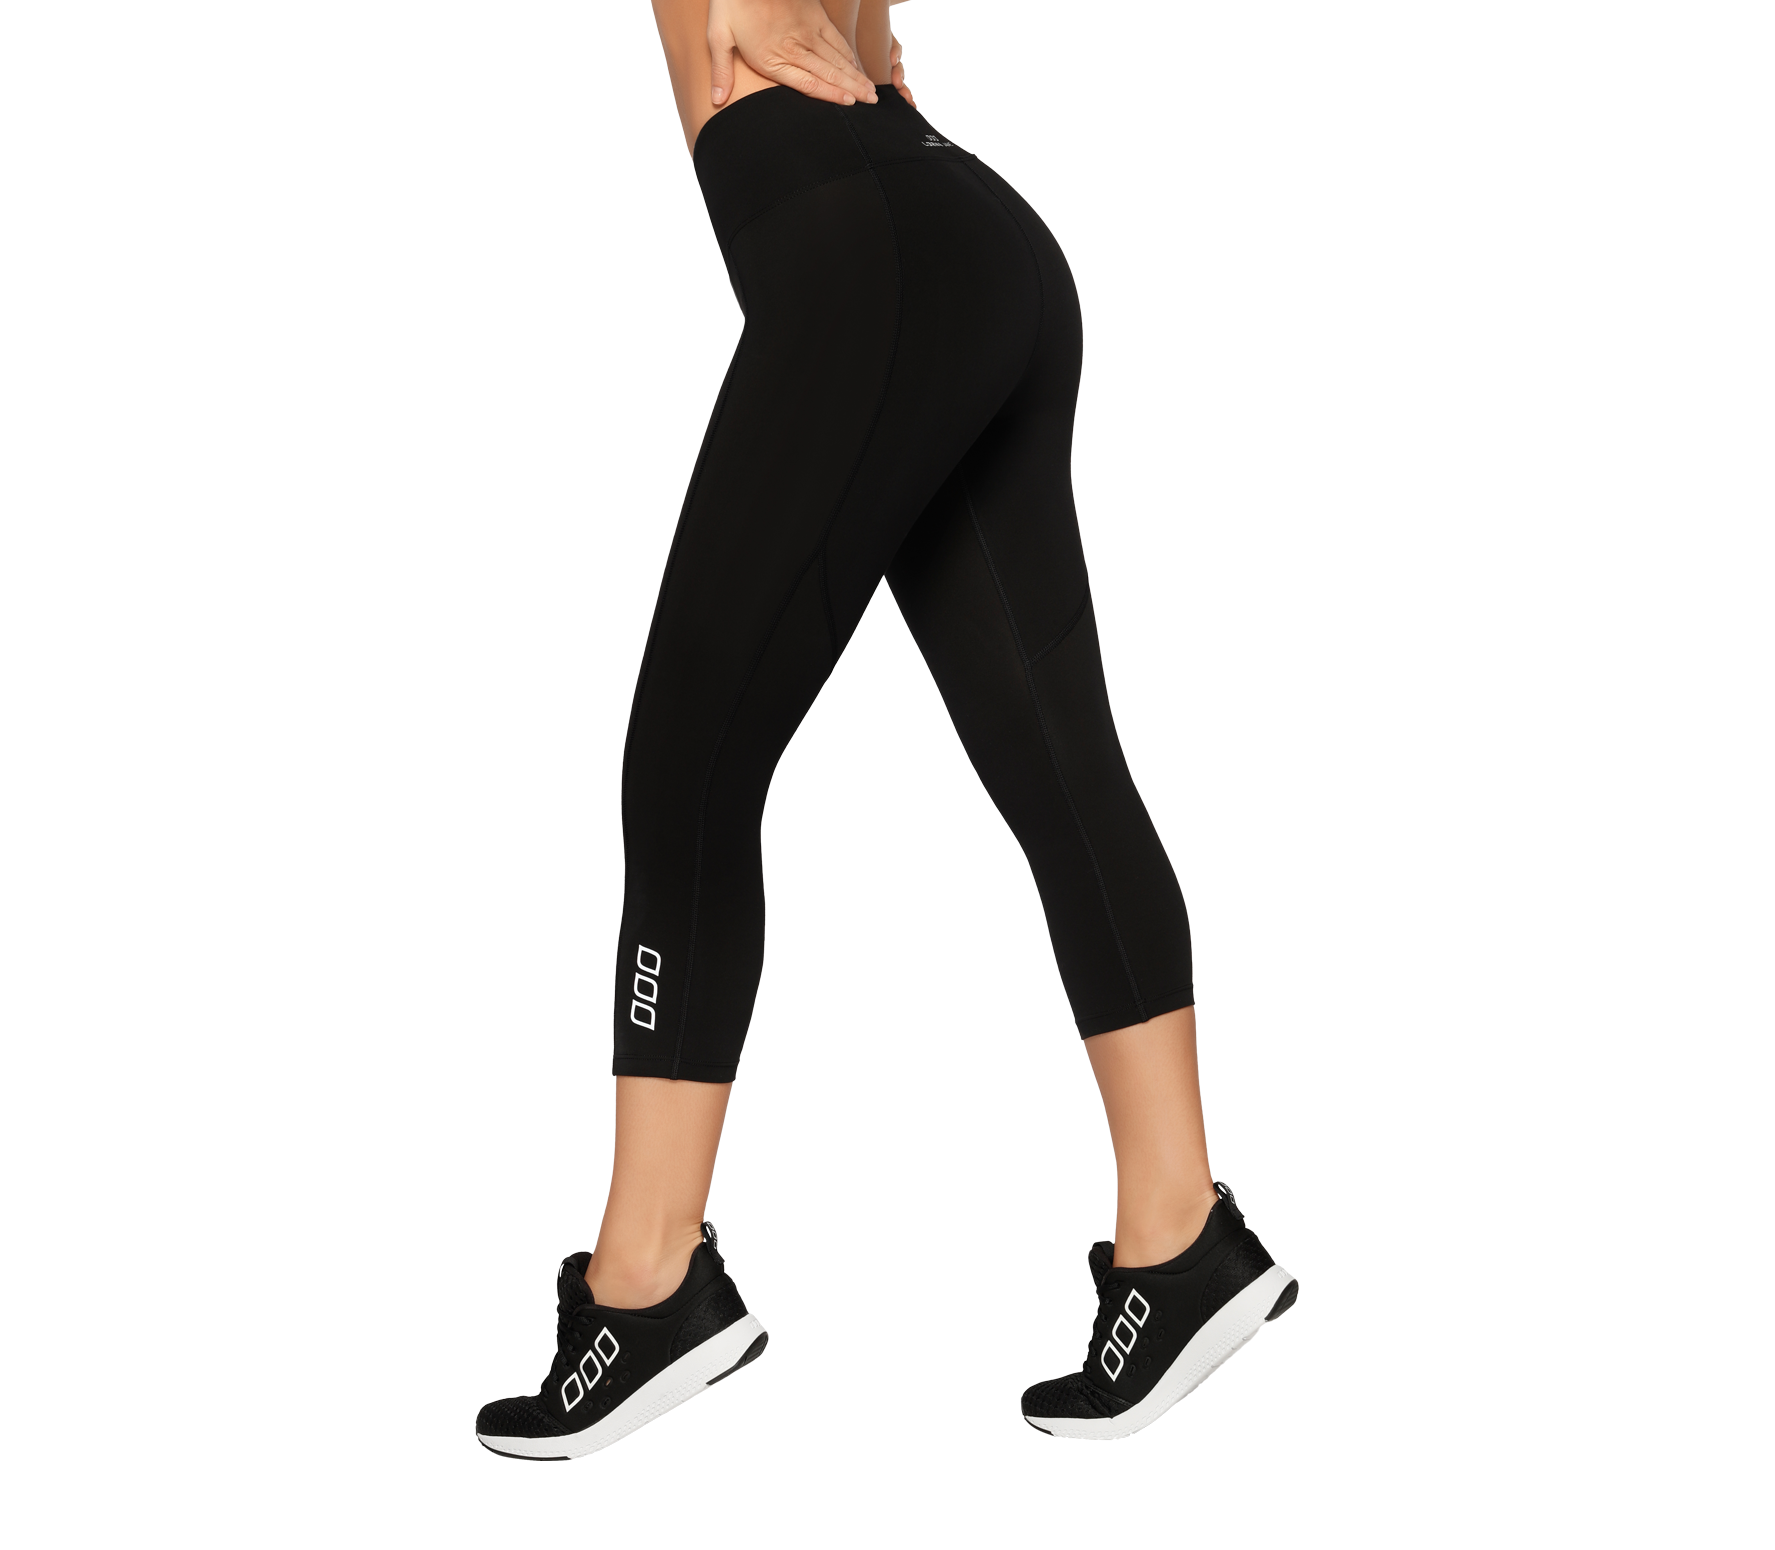 Lorna Jane - Booty Support 7/8 women's training pants (black)